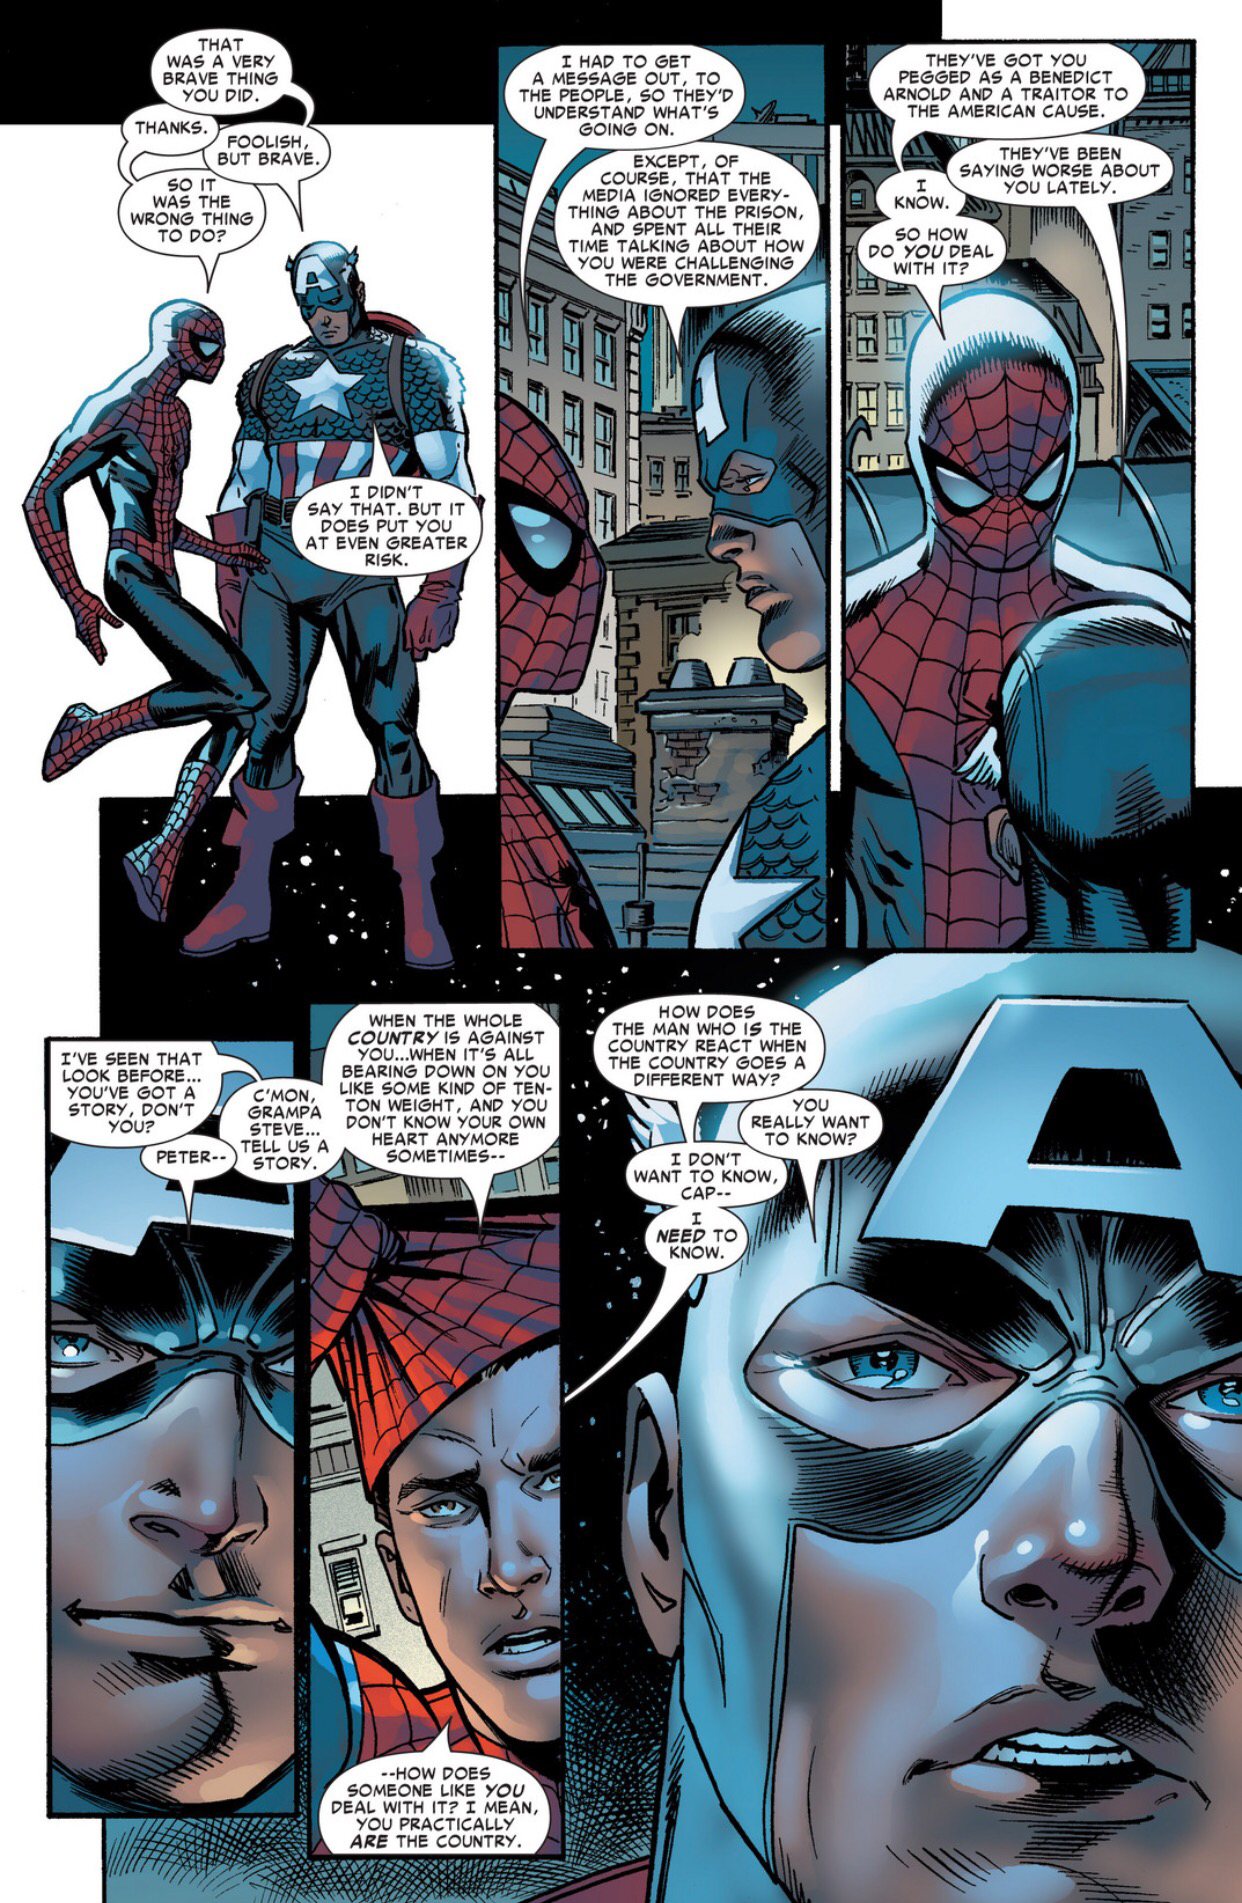 captain america speech to spiderman